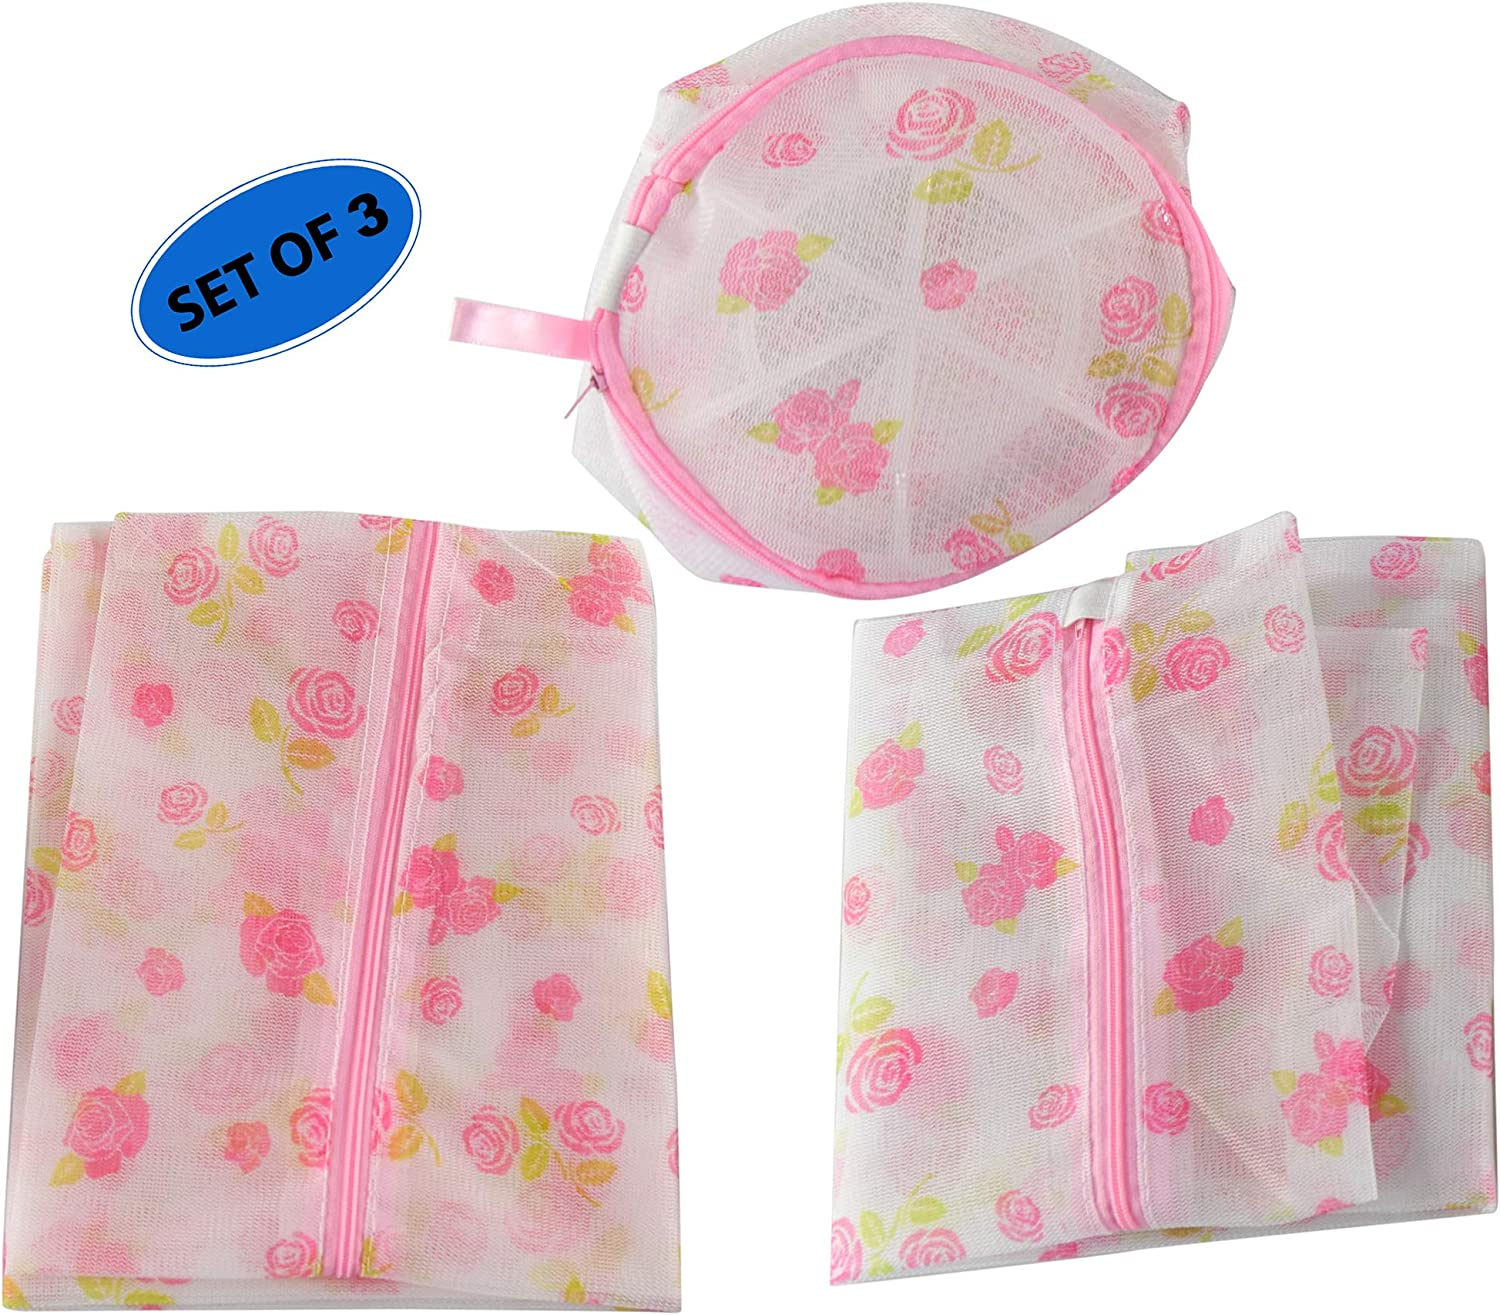 Home-X Set of 3 Mesh Laundry Bags, Delicate Clothes Wash Bag, Lingerie Bags, Baby, Socks, Underwear, Clothing Bags for Travel-Roses Print-3 Sizes